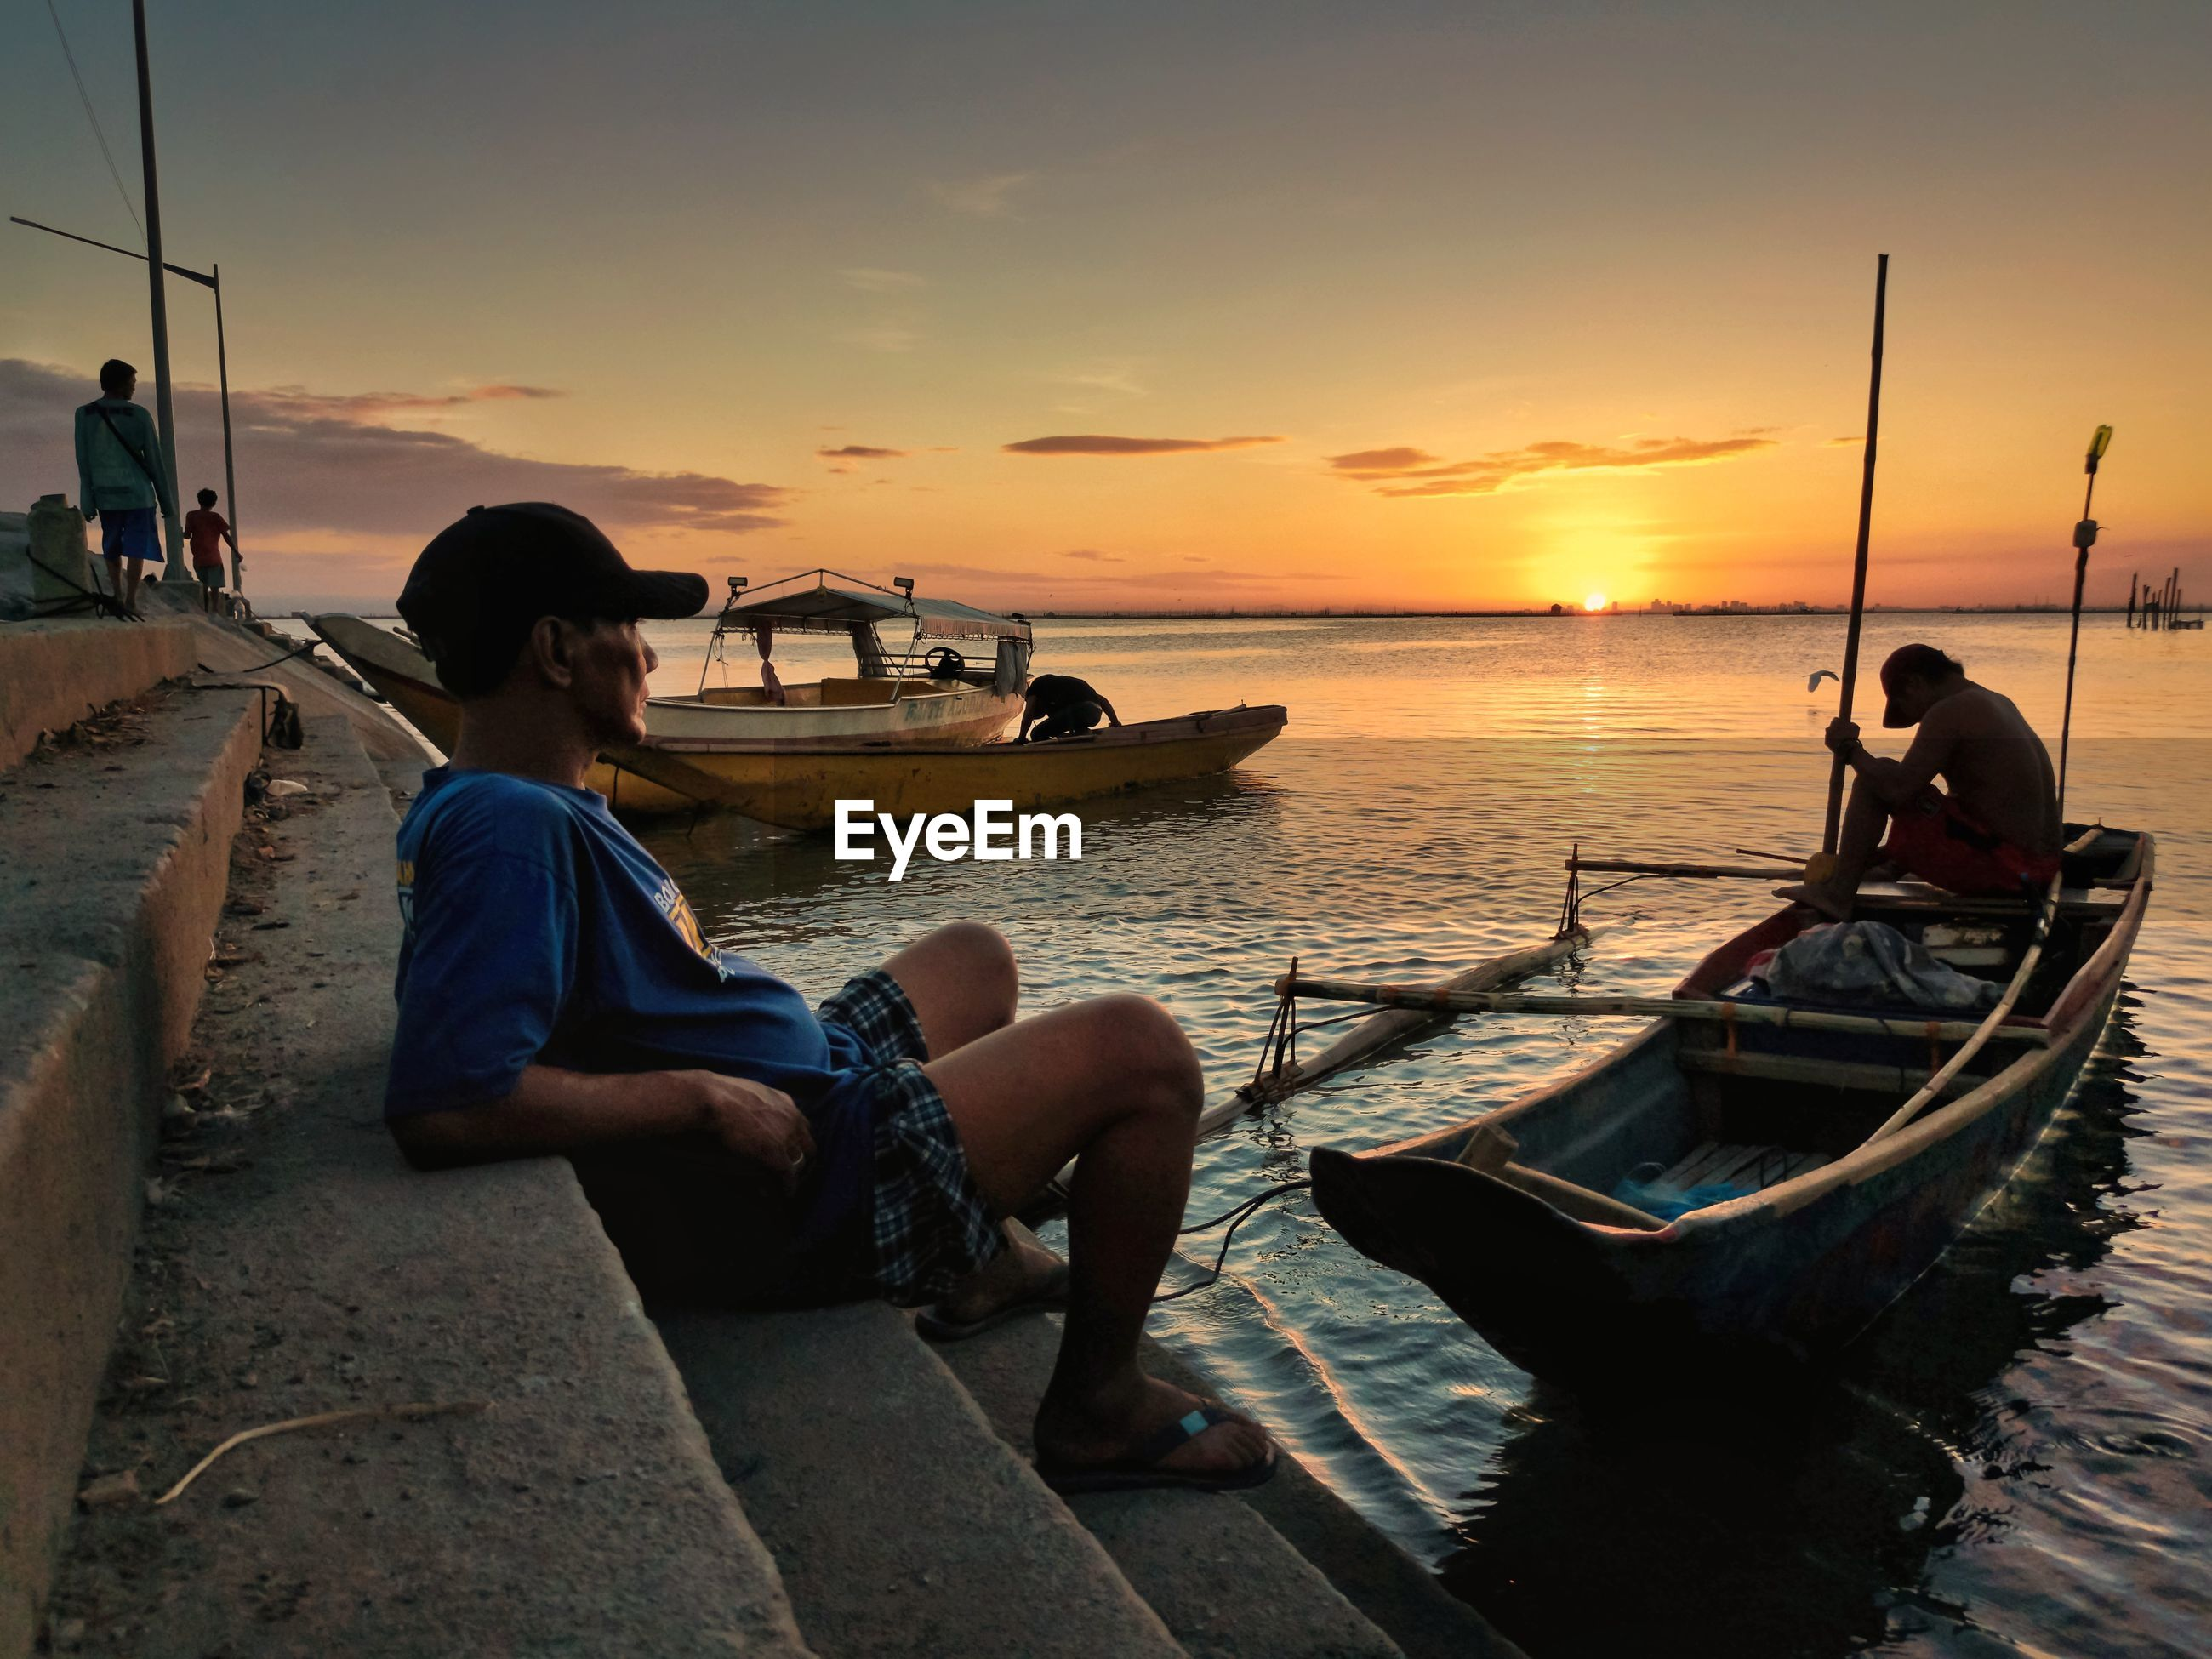 PEOPLE SITTING ON BOAT AGAINST SEA DURING SUNSET